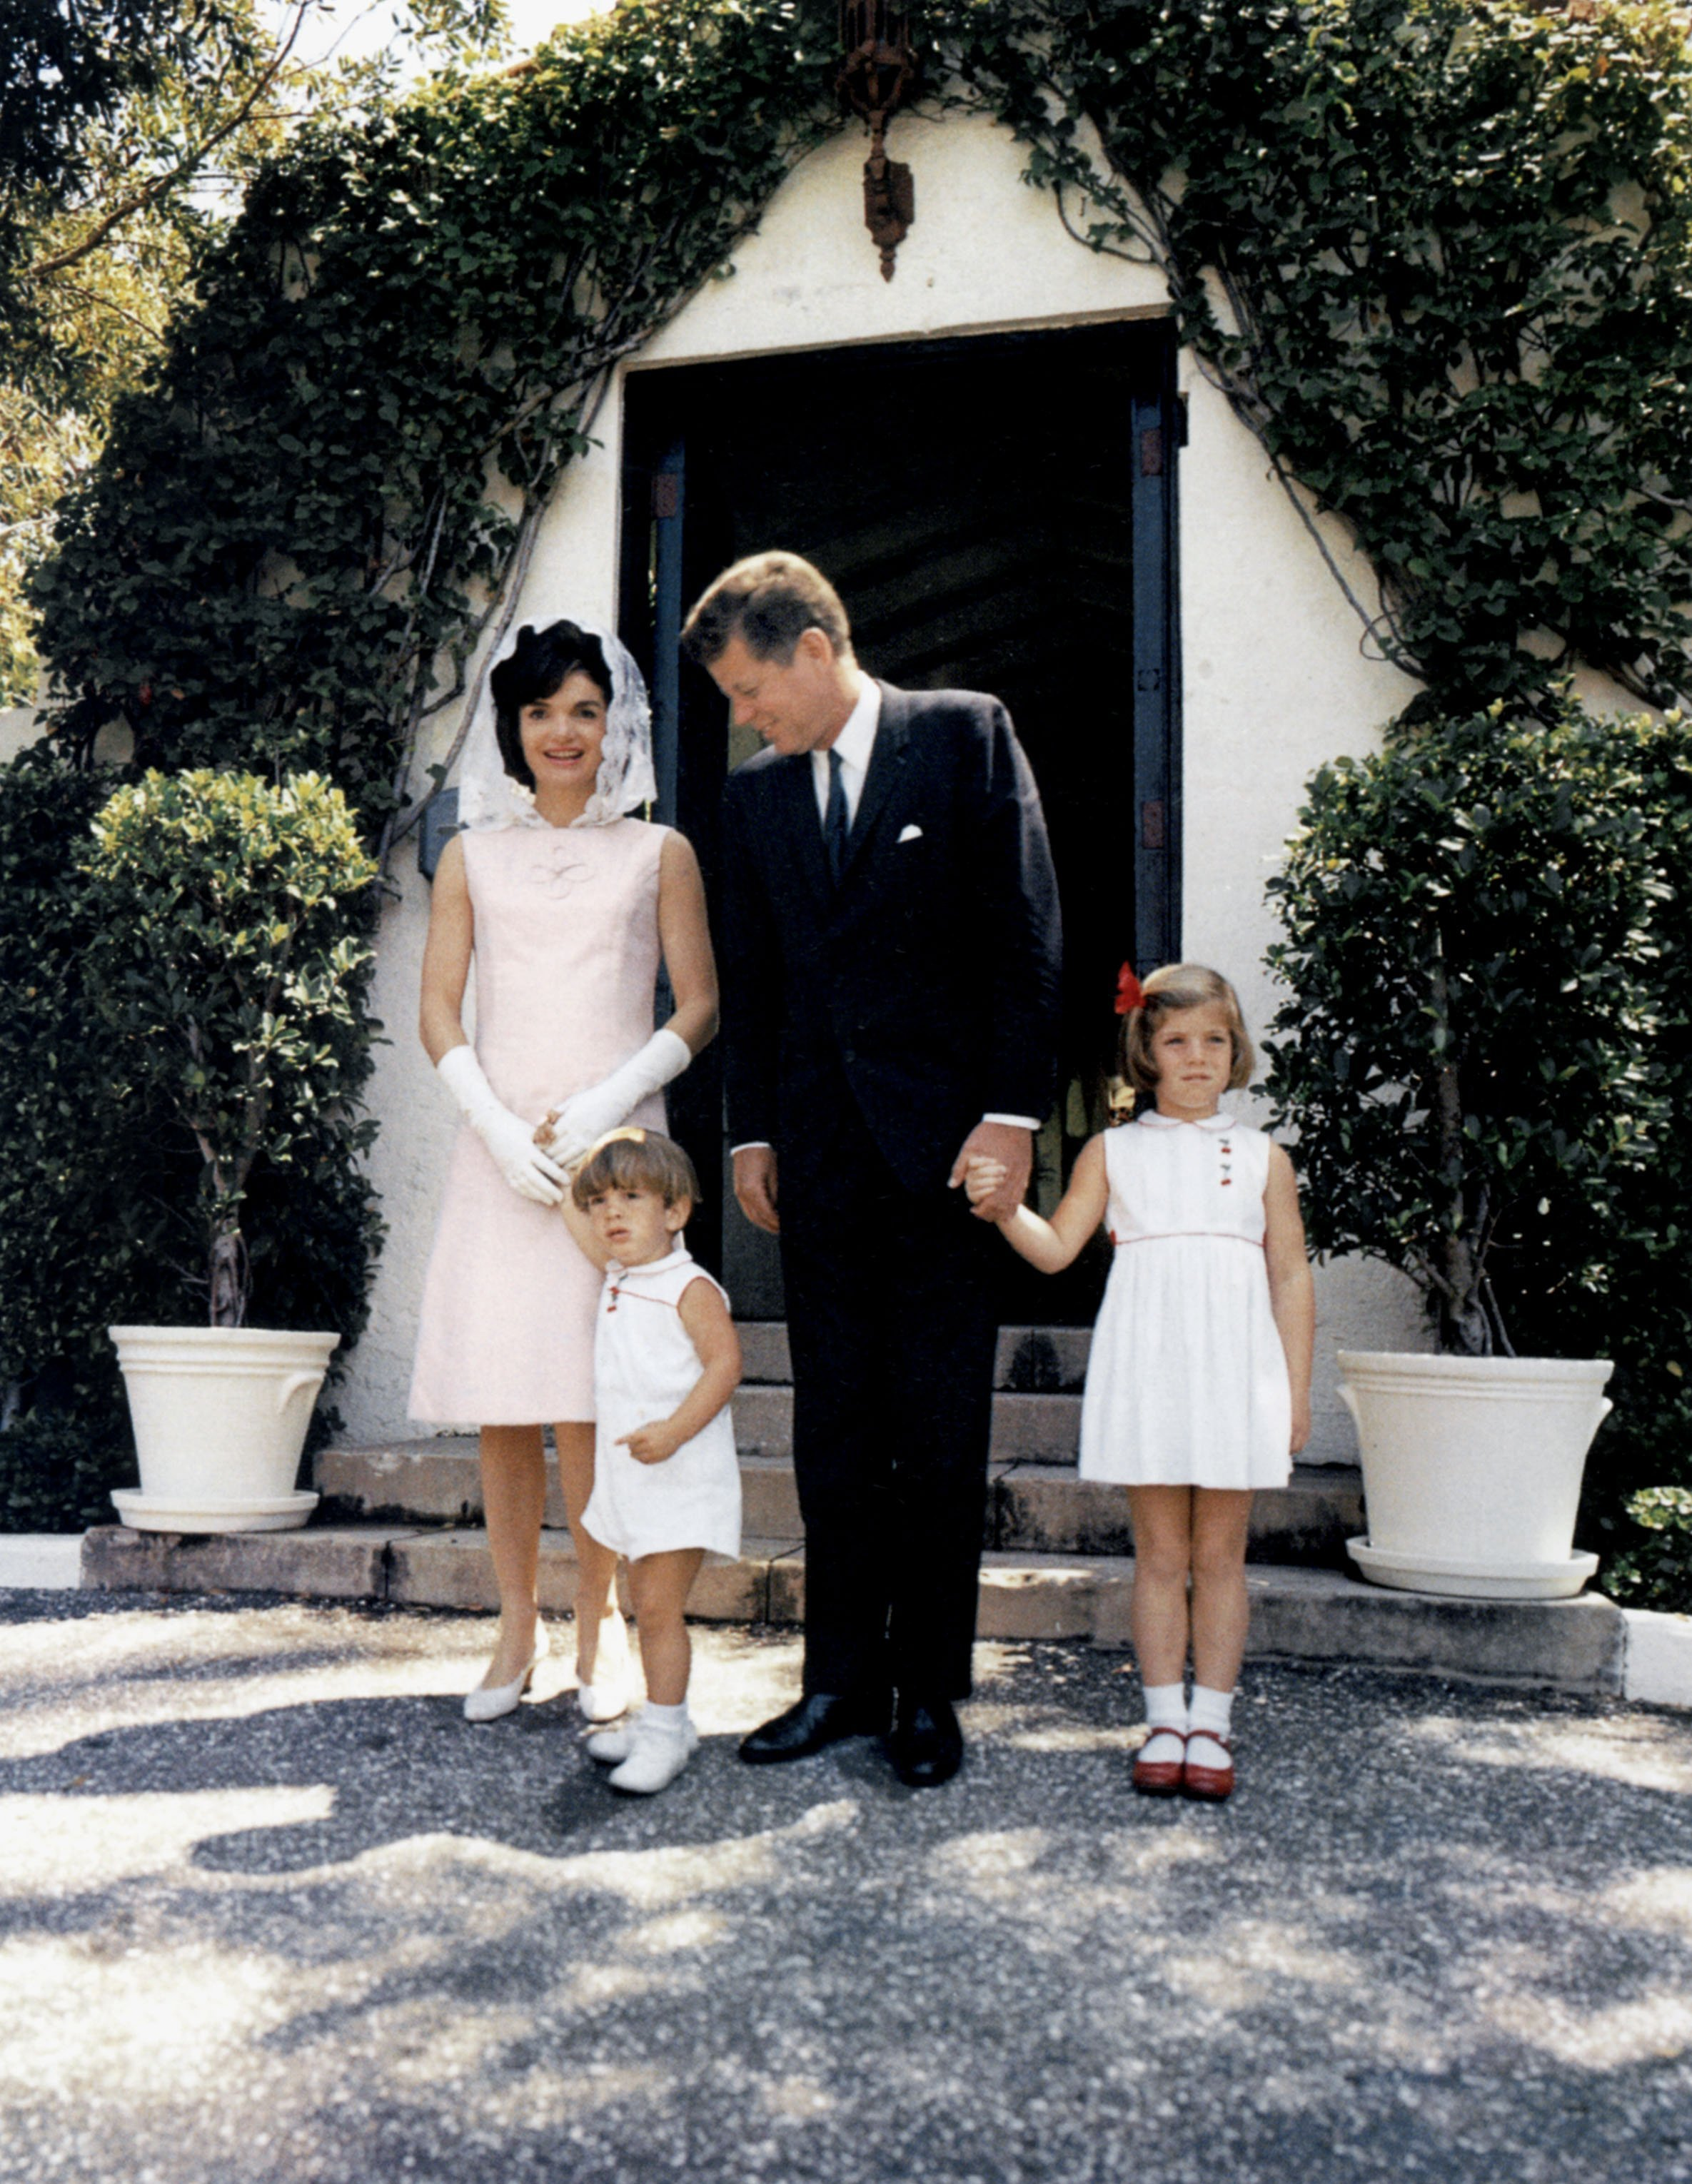 John Kennedy and his wife Jackie and their children John Jr and Caroline at Palm Beach, Florida on April 14, 1963. | Source: Getty Images.